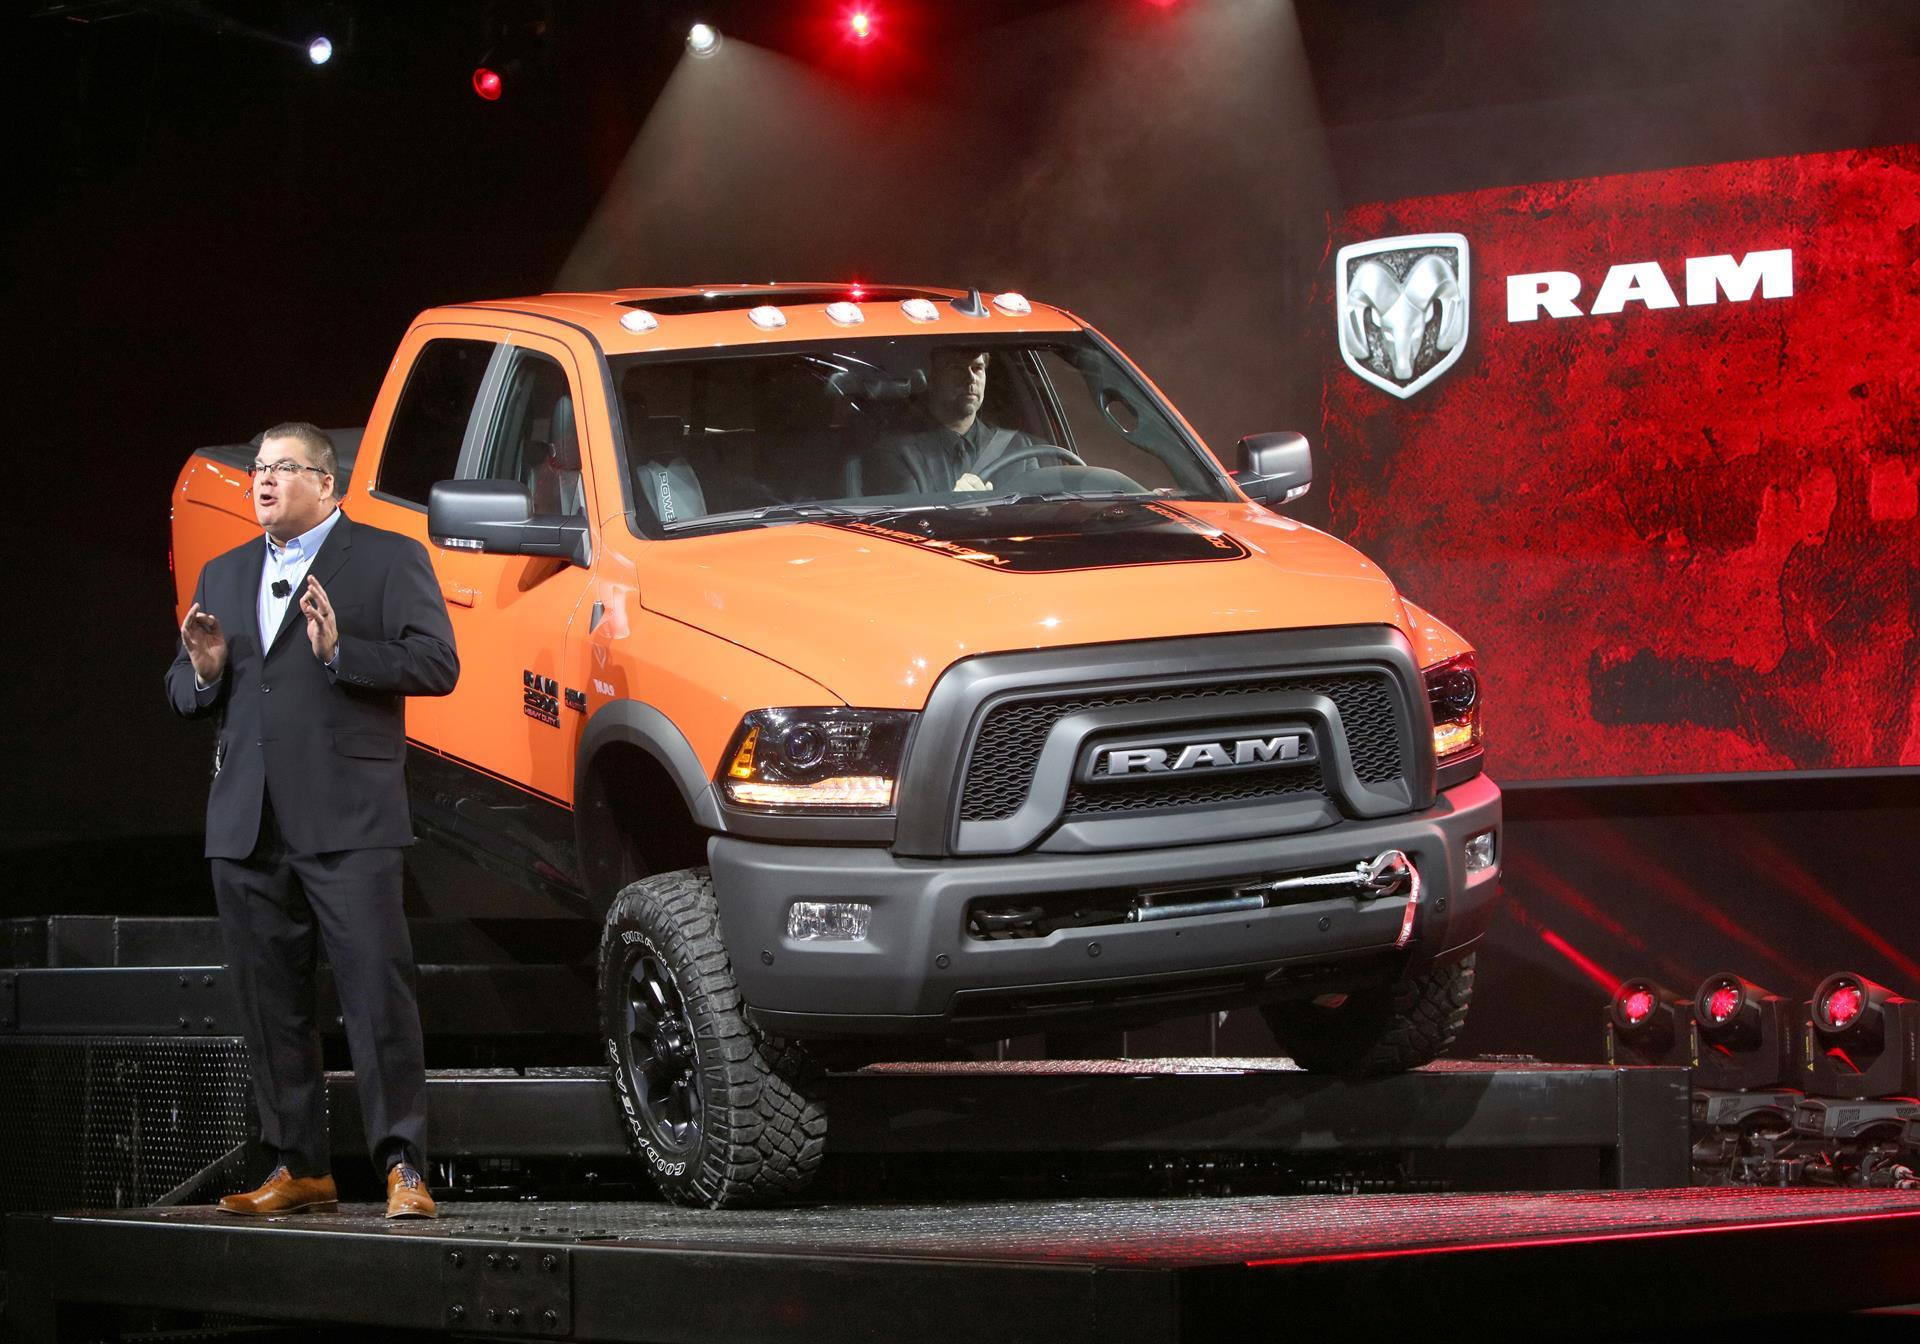 2017 Ram Power Wagon News and Information | conceptcarz.com